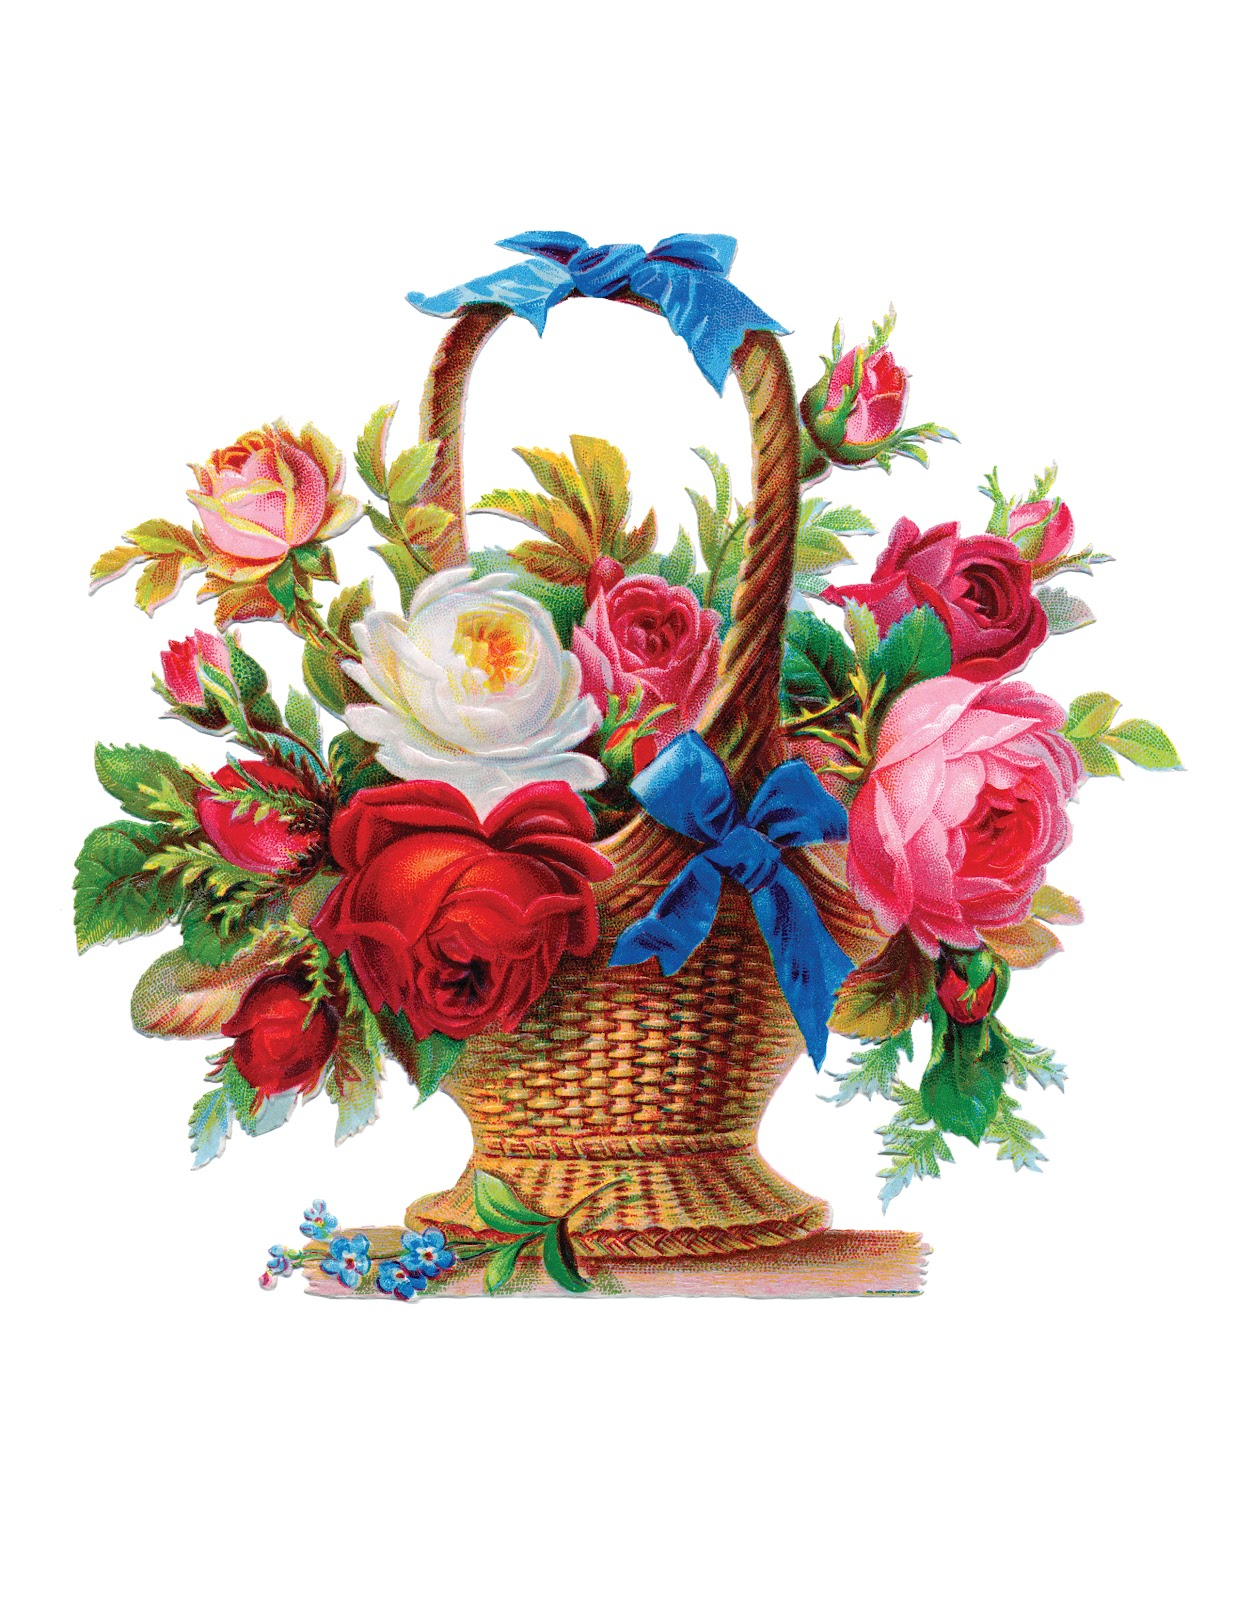 Basket Of Flowers Clip Art - ClipArt Best